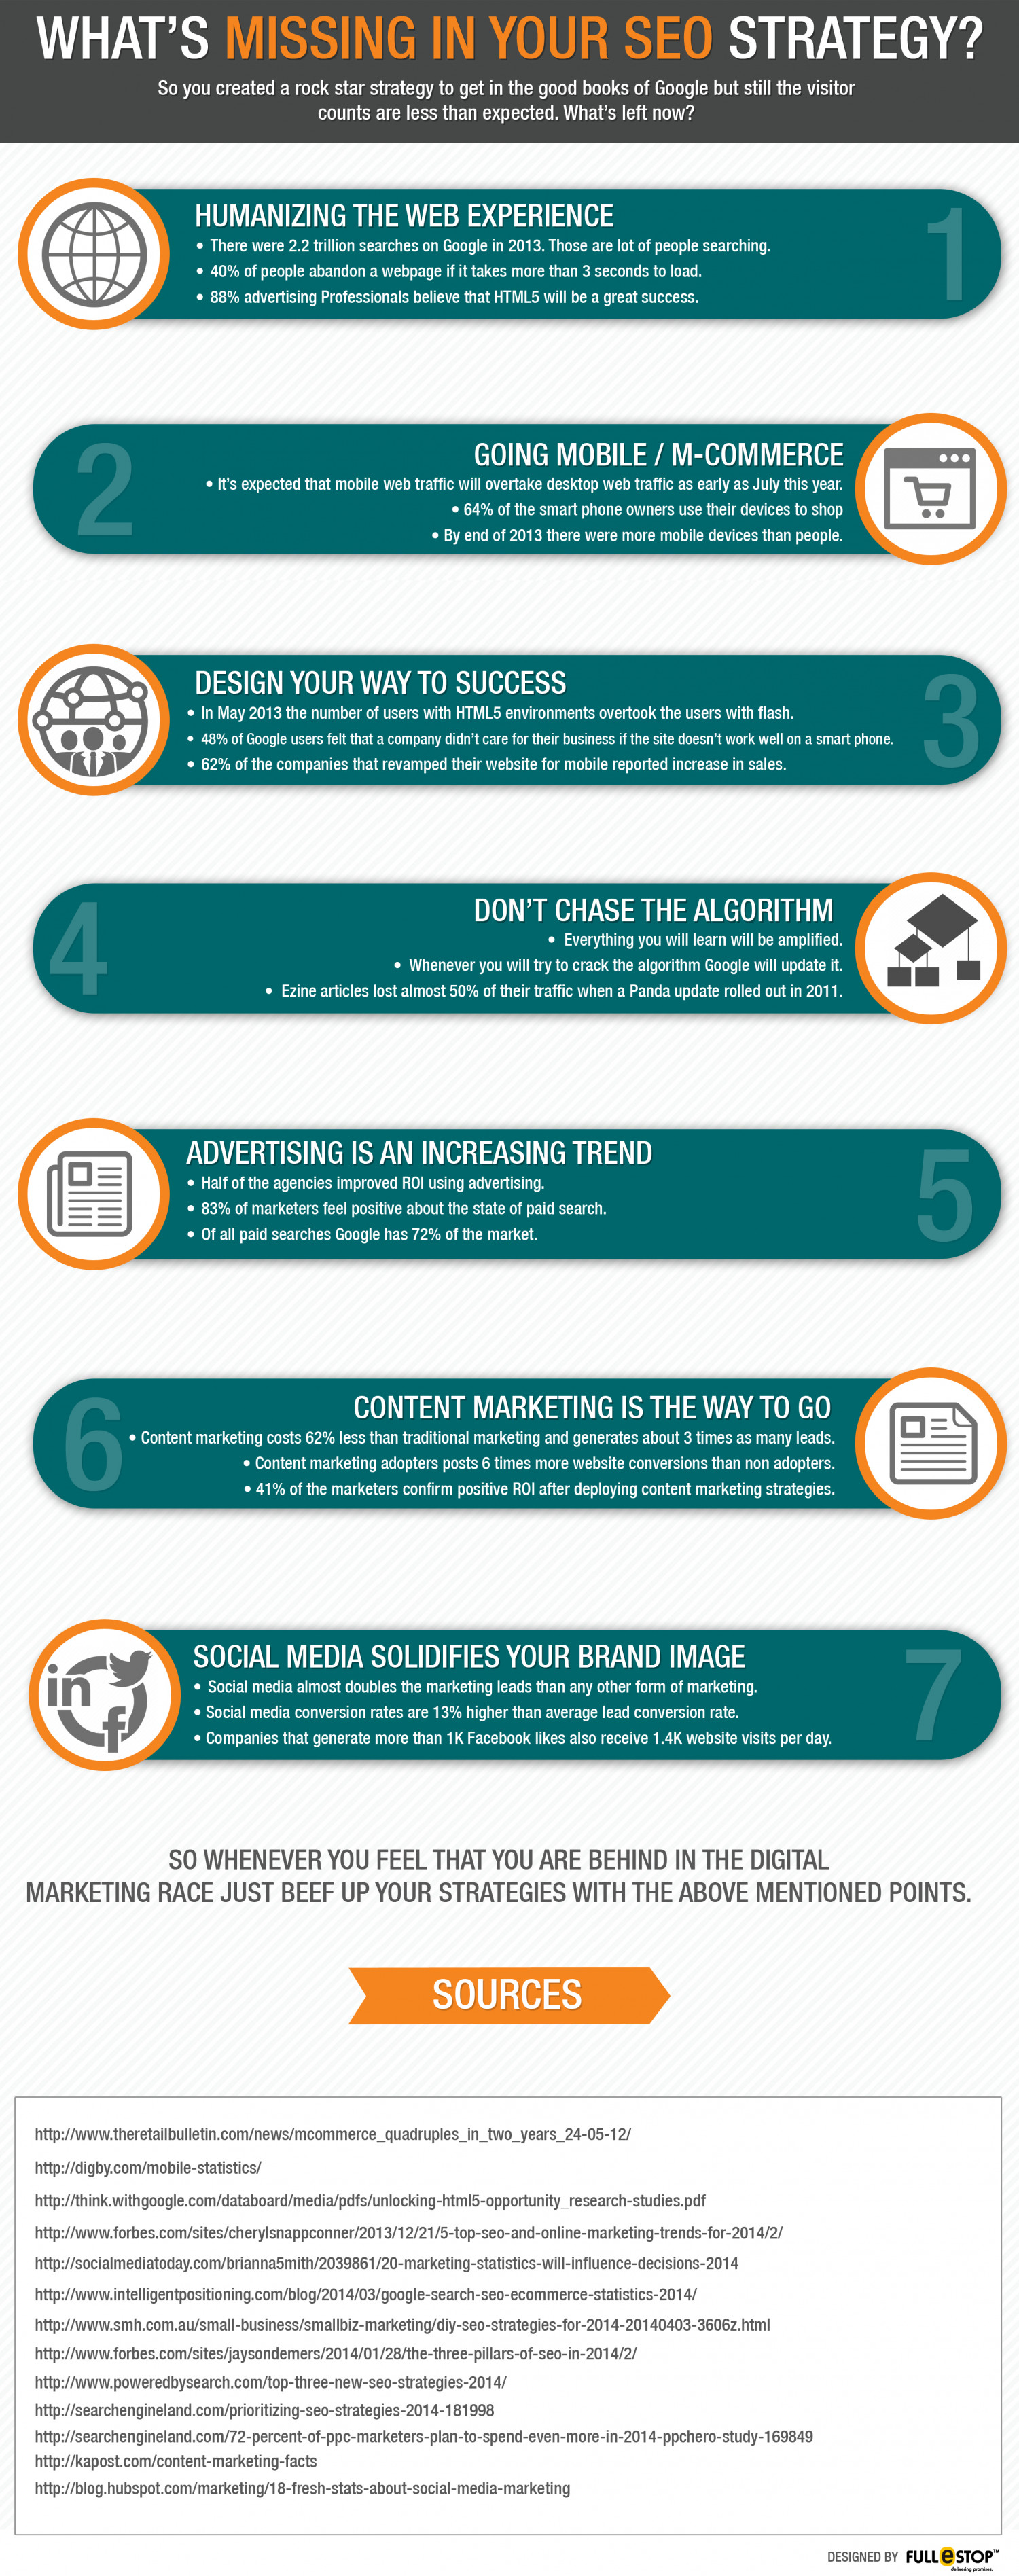 What's Missing in Your SEO Strategy? Infographic